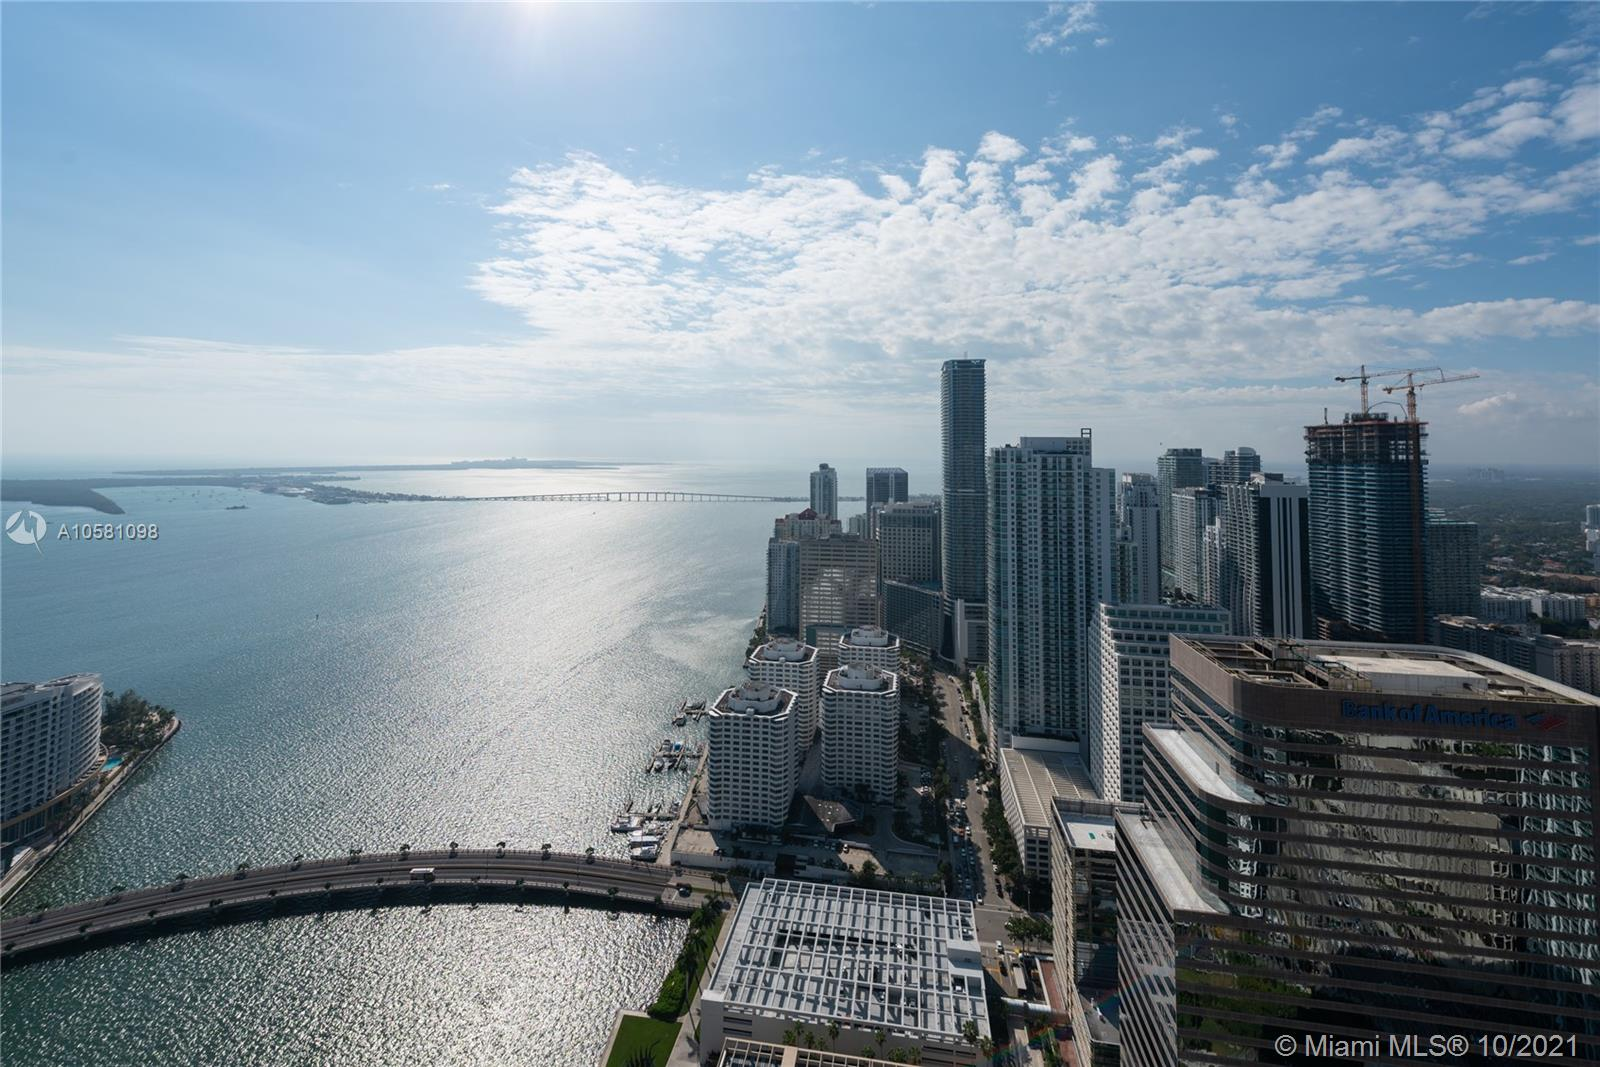 This beautiful 2 story Penthouse boasting incredible bay and city views. The second floor has an open bedroom with private bath that opens to an incredible terrace with hot tub overlooking the ocean. First floor, two bedrooms with high impact sliding doors to balcony. Marble floors, private bar area with wine cooler and open kitchen for a nice entertaining. In the heart of Miami, not far from Miami International Airport and Miami Beach, Design District.